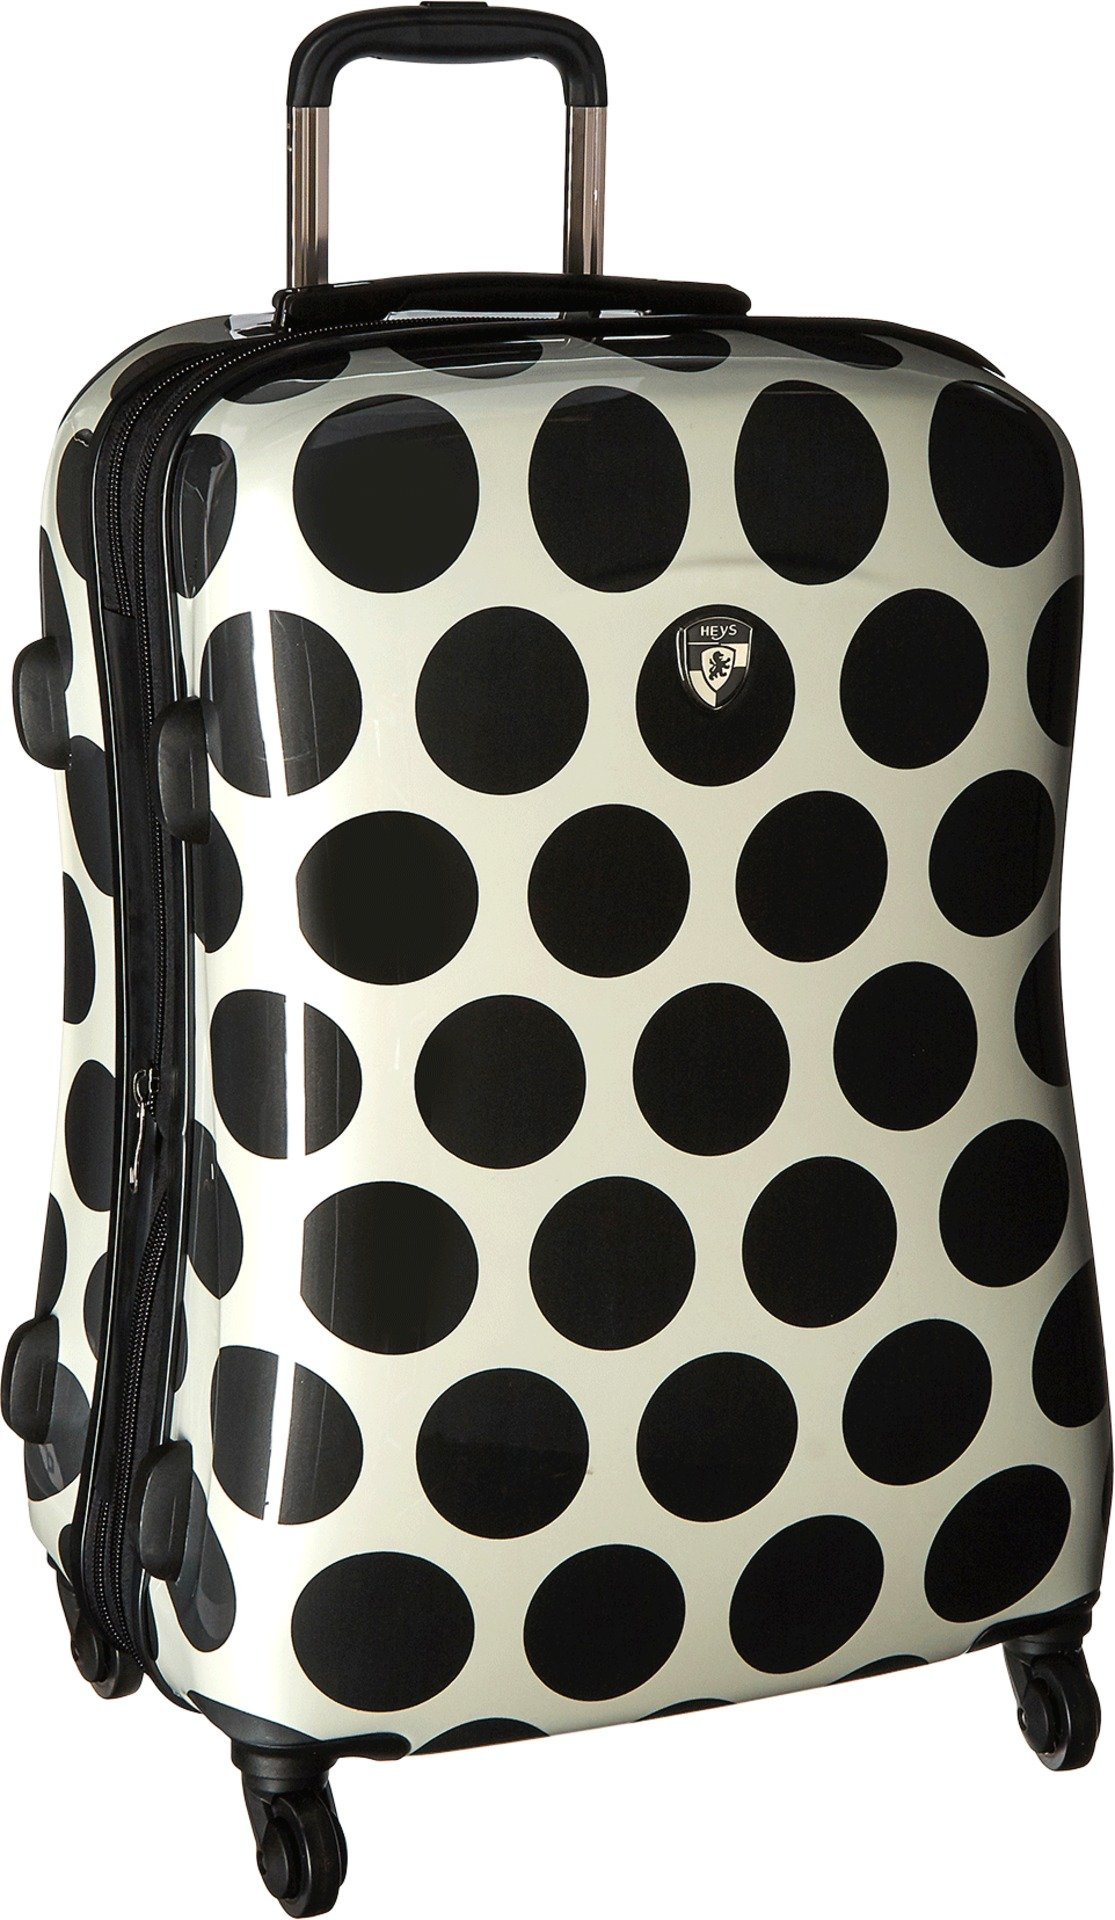 Heys America Unisex Spotlight 26'' Spinner Black/White Luggage by HEYS AMERICA